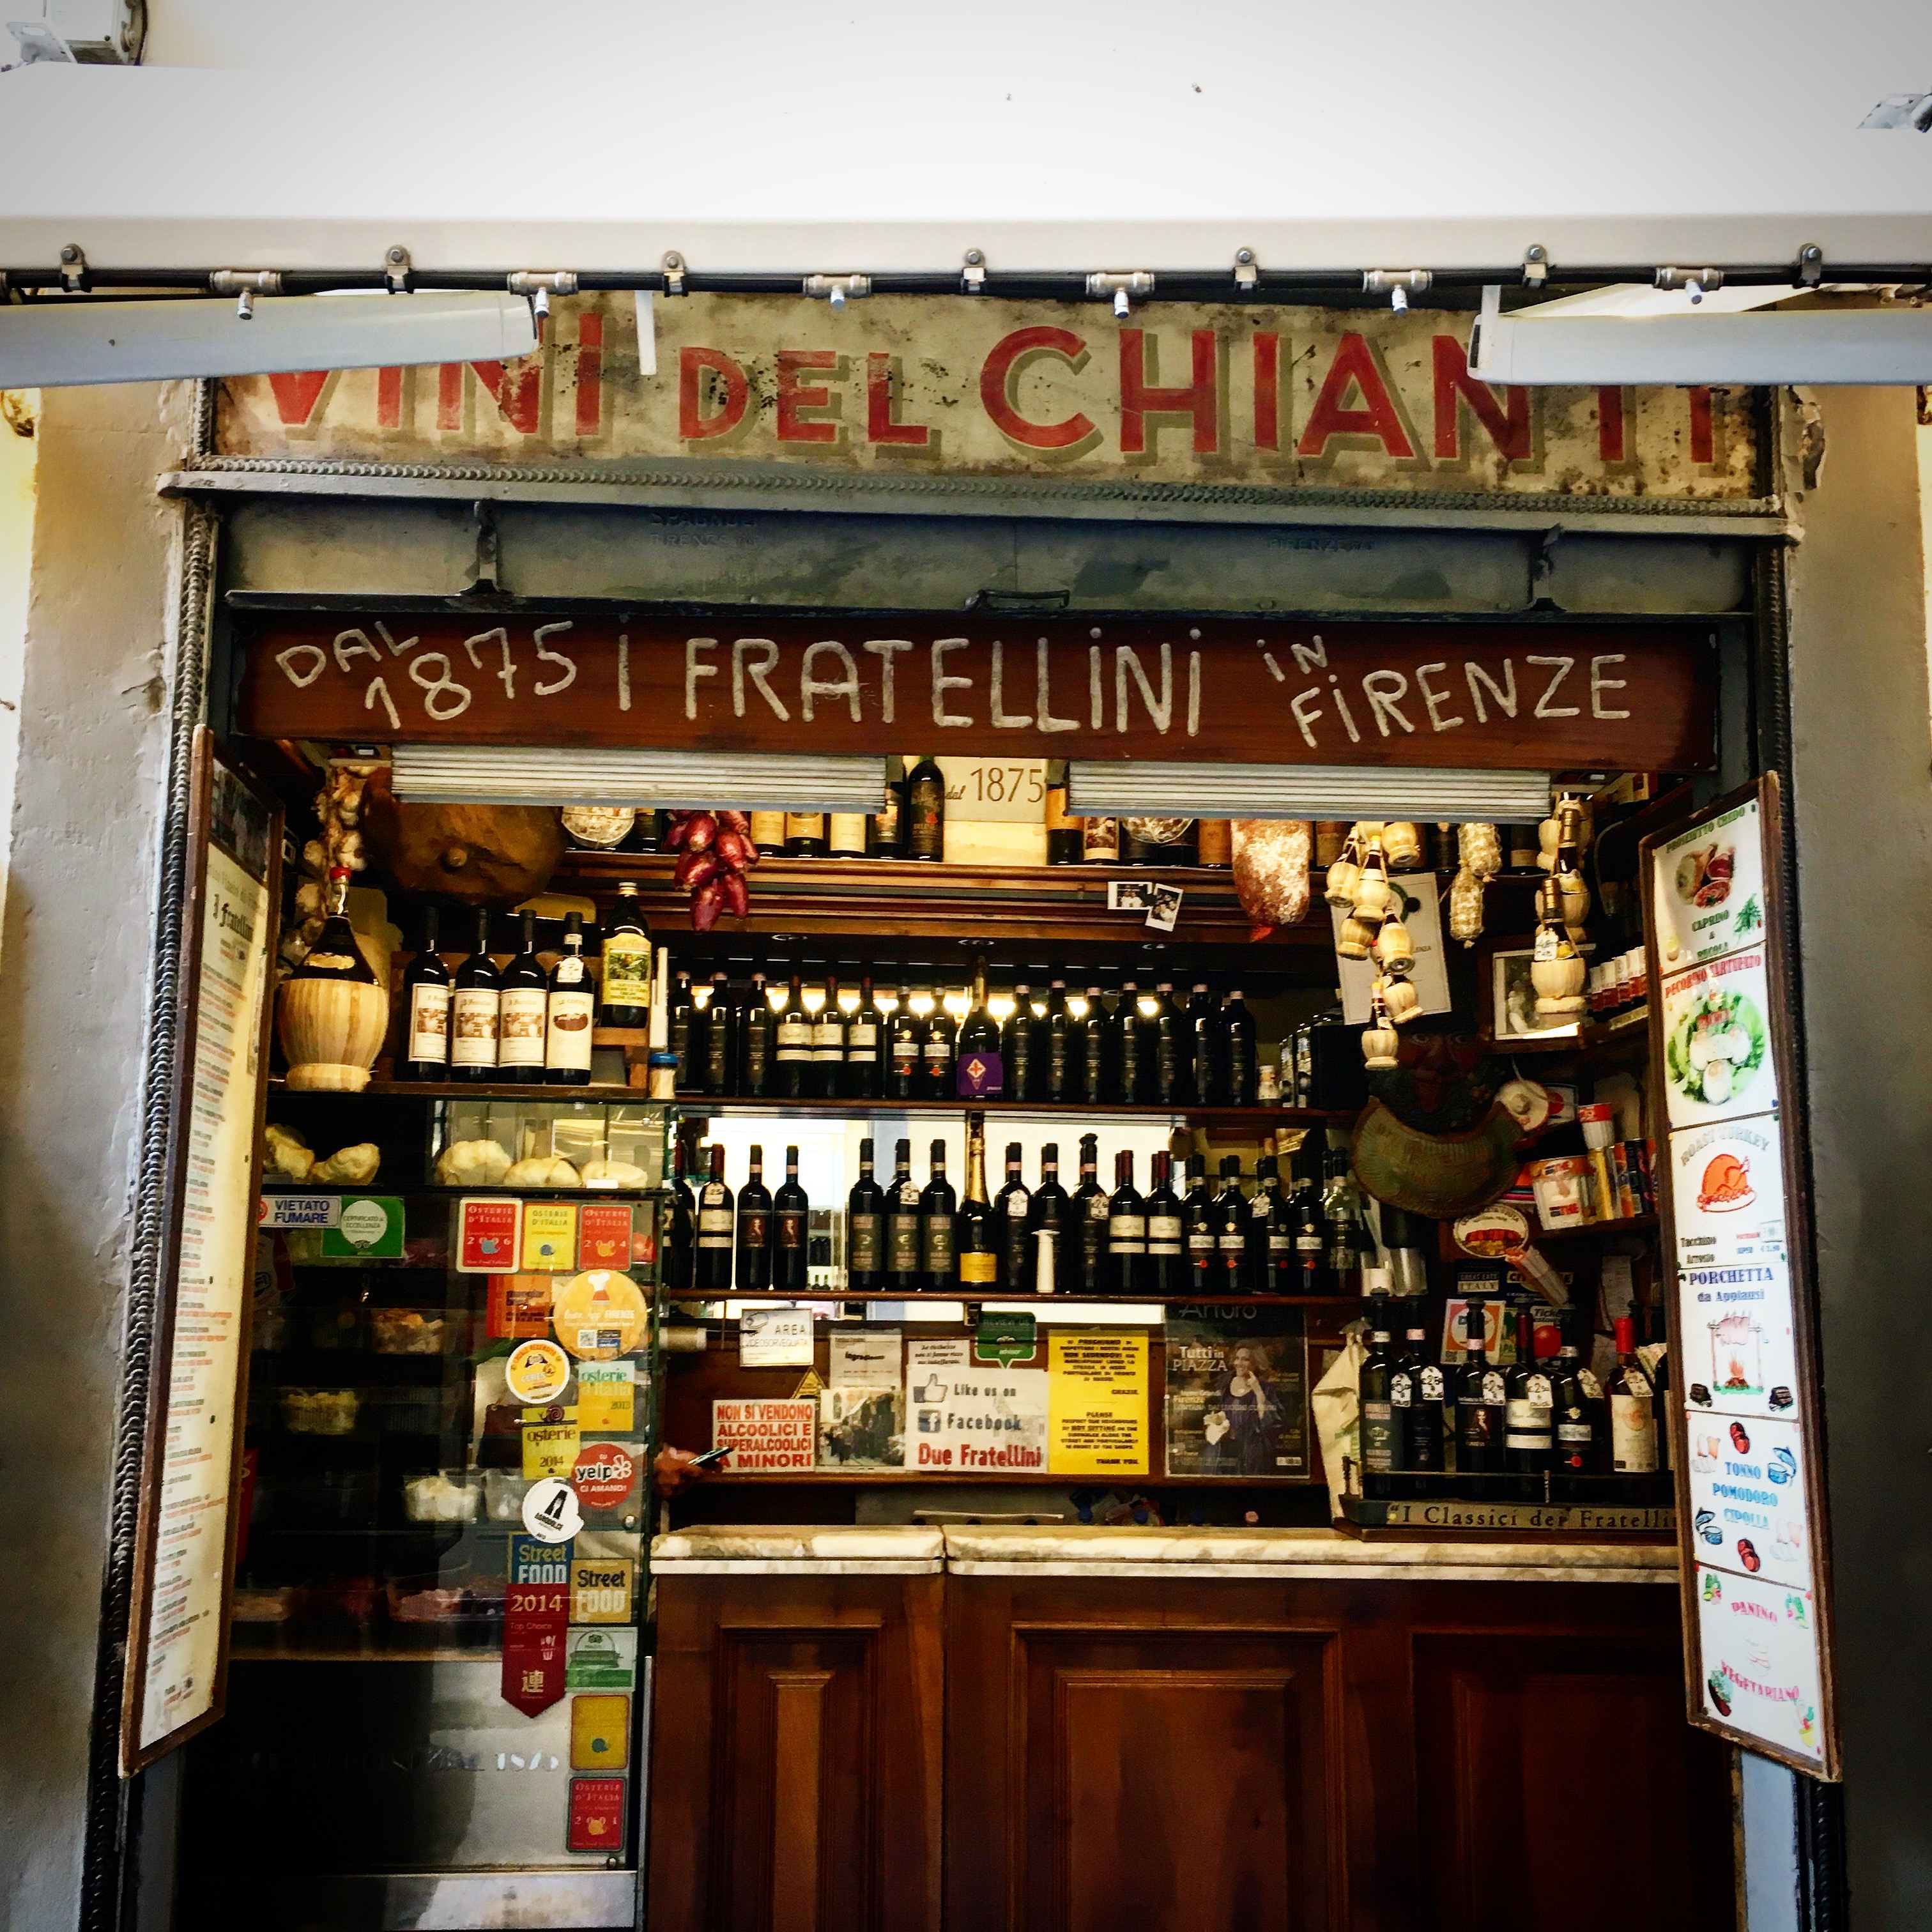 I DUE FRATELLINI – Antica Vineria